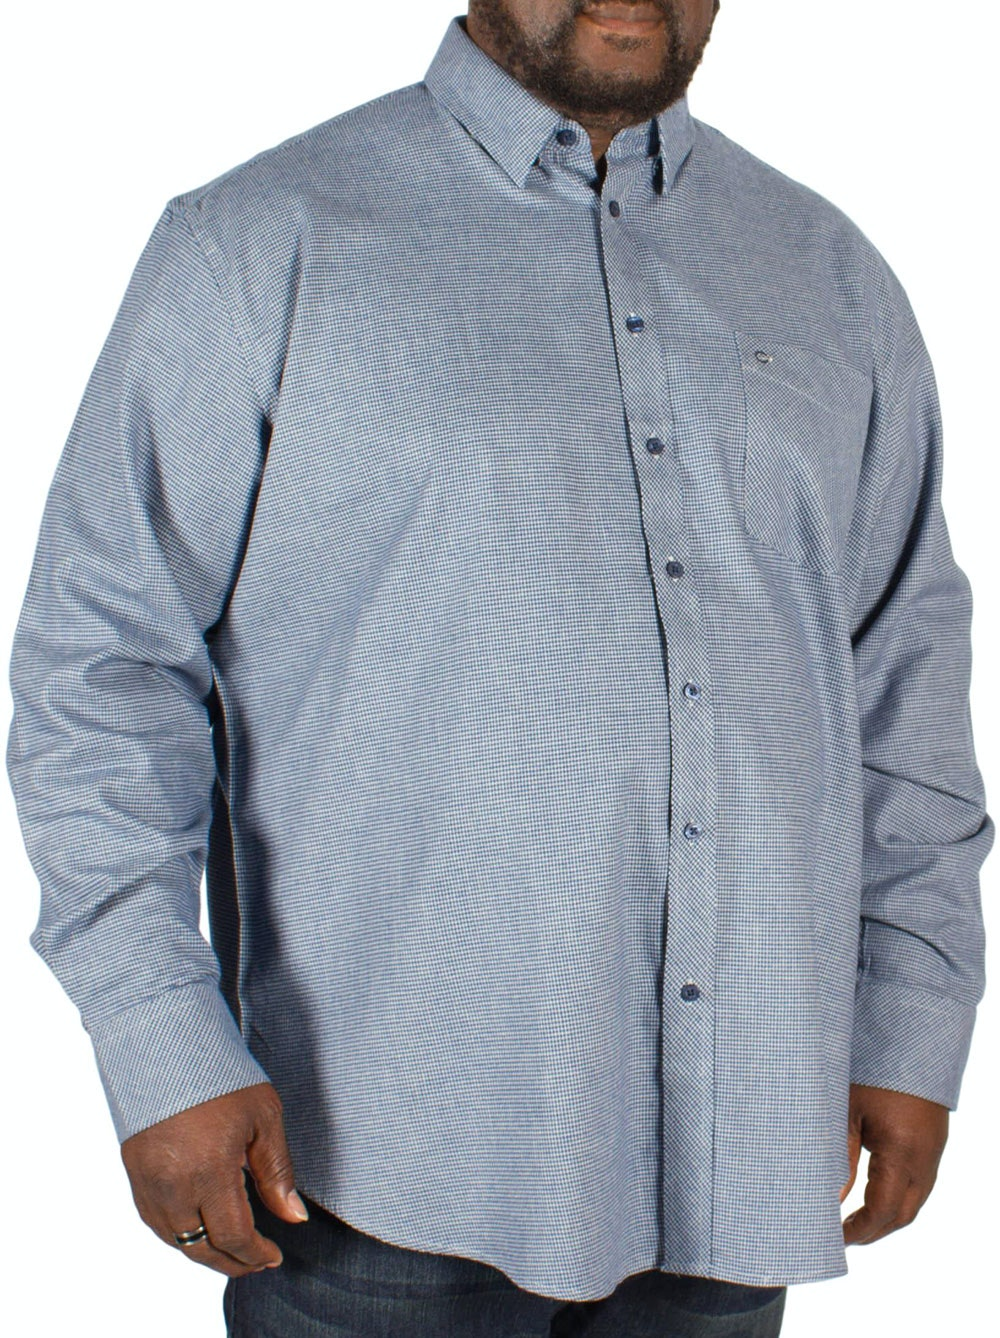 Peter Gribby Long Sleeve Hounds Tooth Shirt Royal